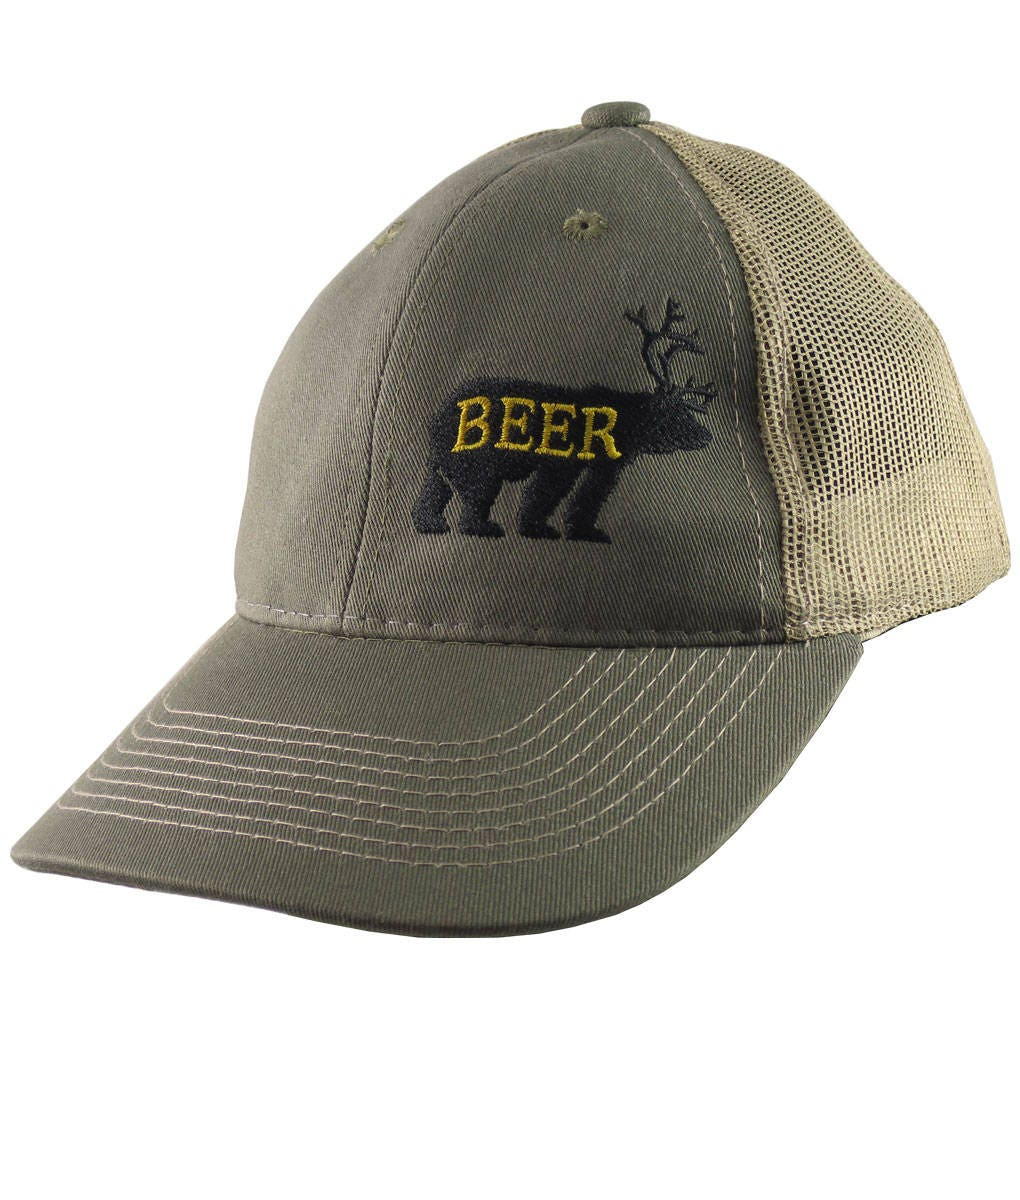 8825382005f Deer Plus Bear for Beer Humorous Black Embroidery on an Adjustable Olive  Green and Tan Structured Truckers Style Snapback Ball Cap